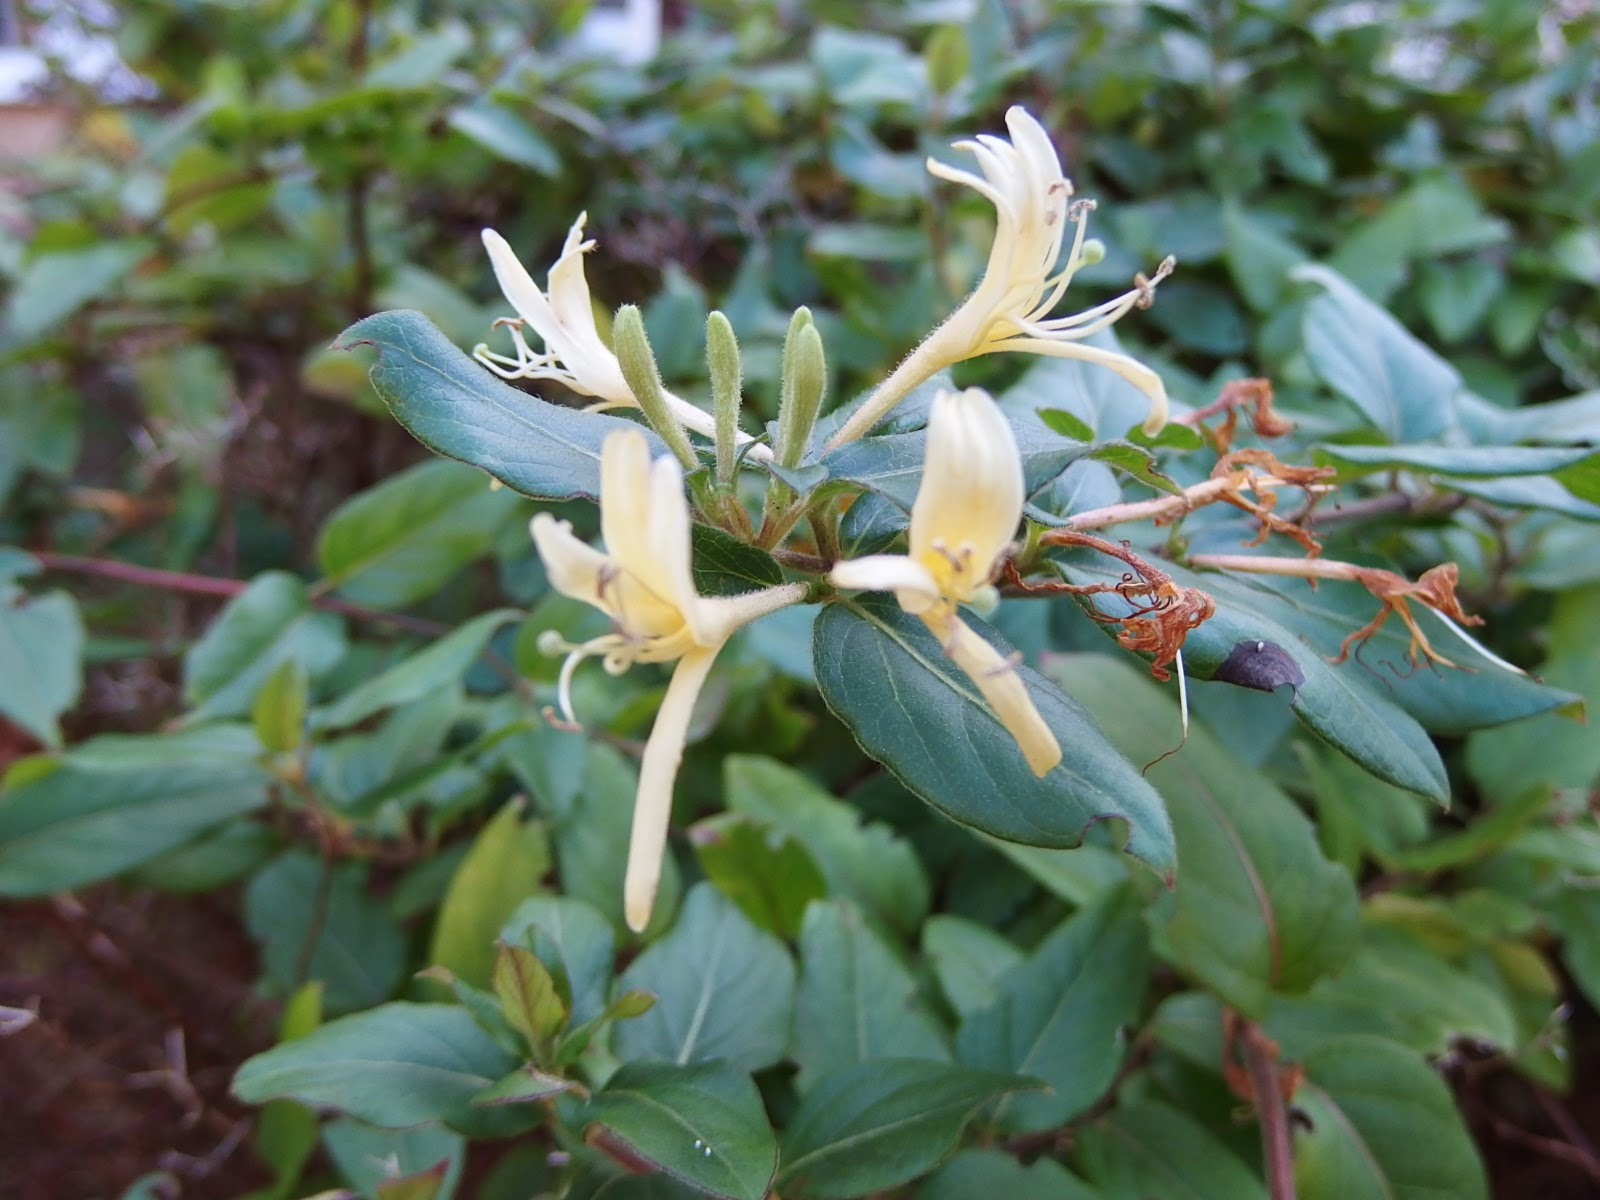 Photo of Lonicera flowering unexpectedly in December